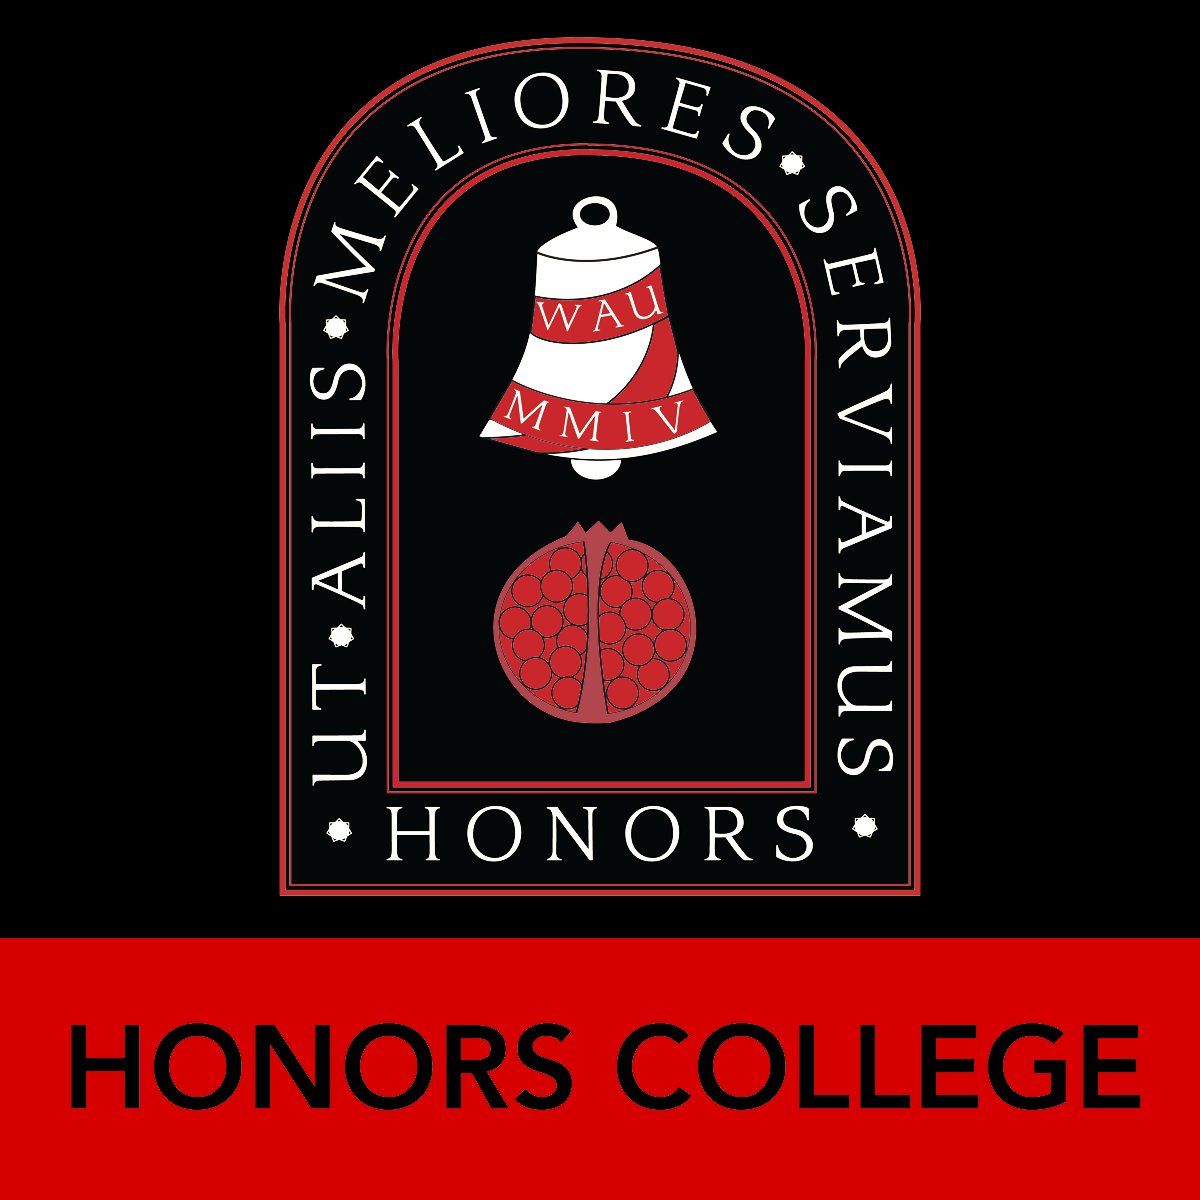 Honors College ICON BADGE